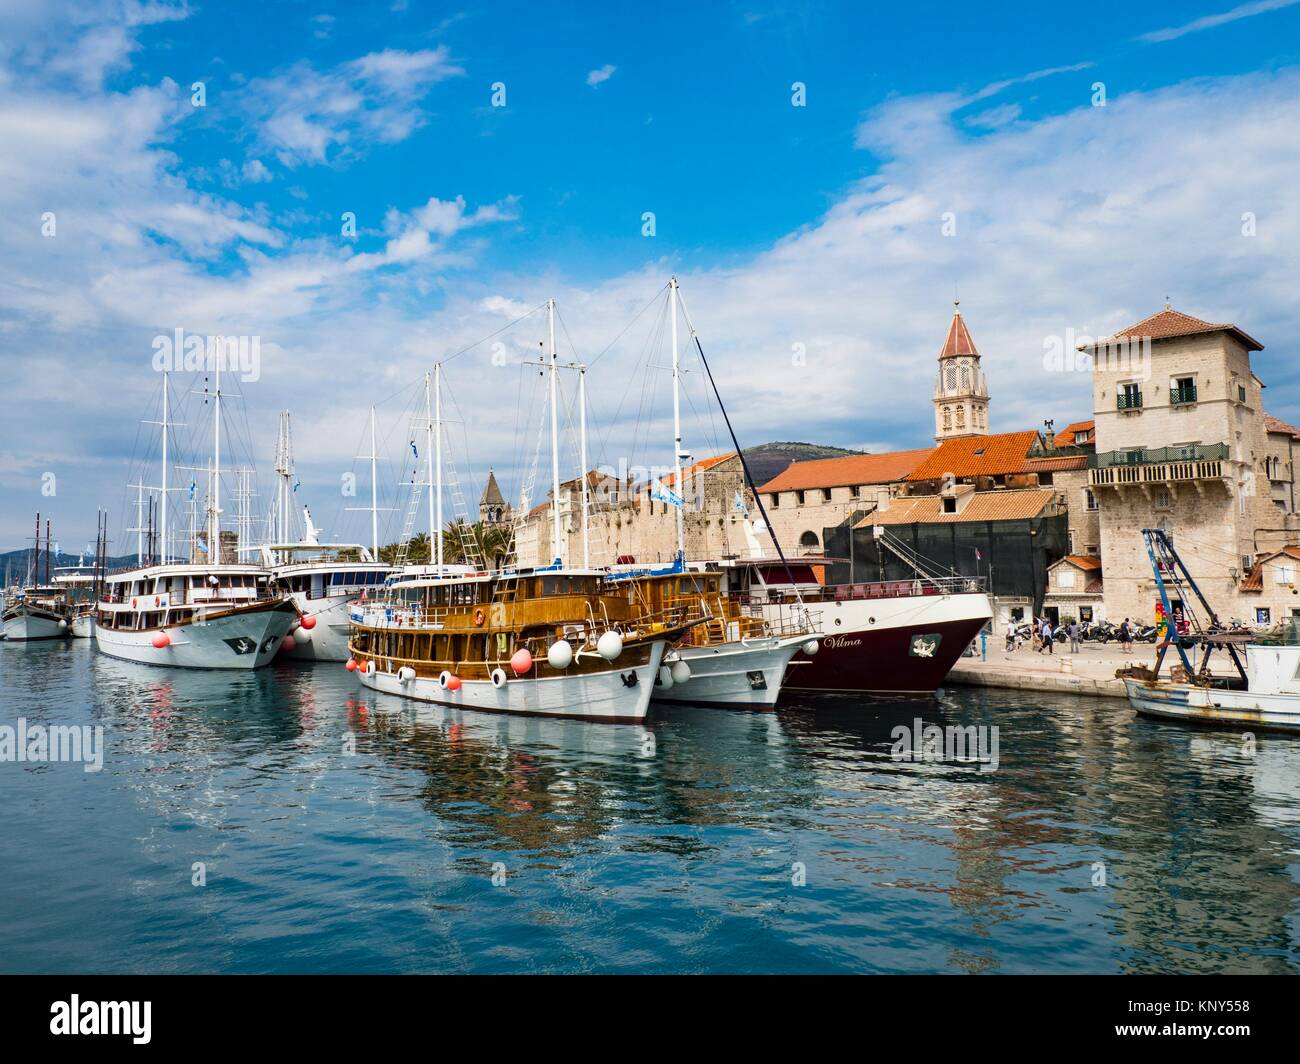 Trogir Croatia Old Town Harbor. - Stock Image